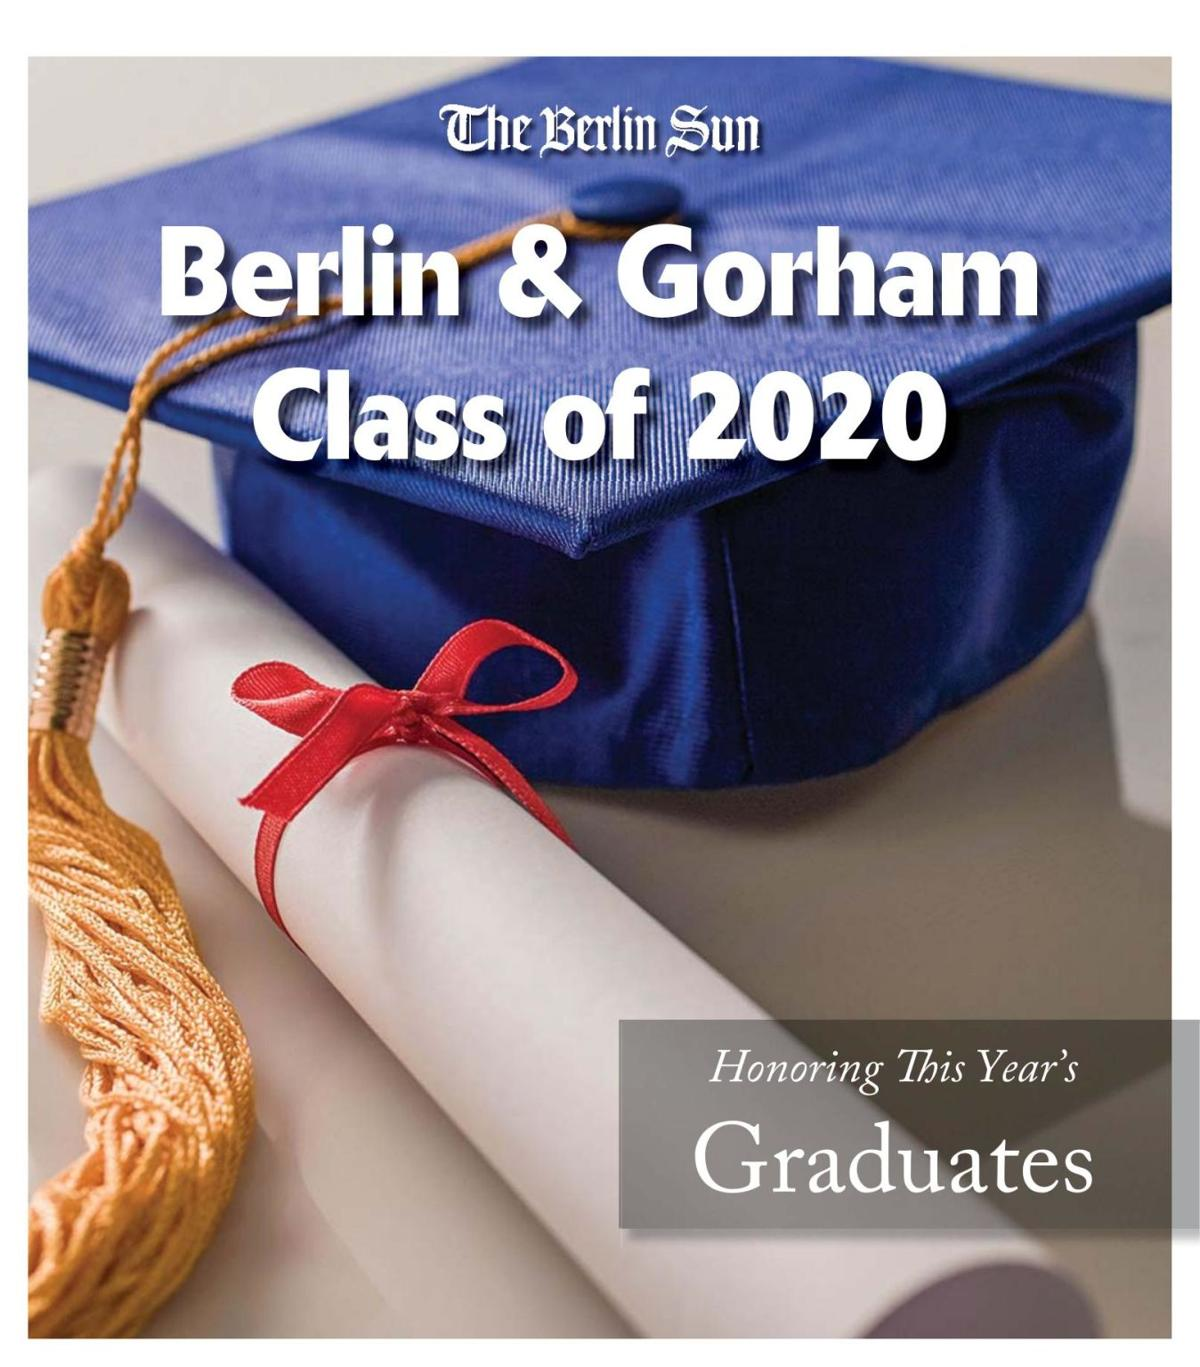 Berlin/Gorham Graduation 2020